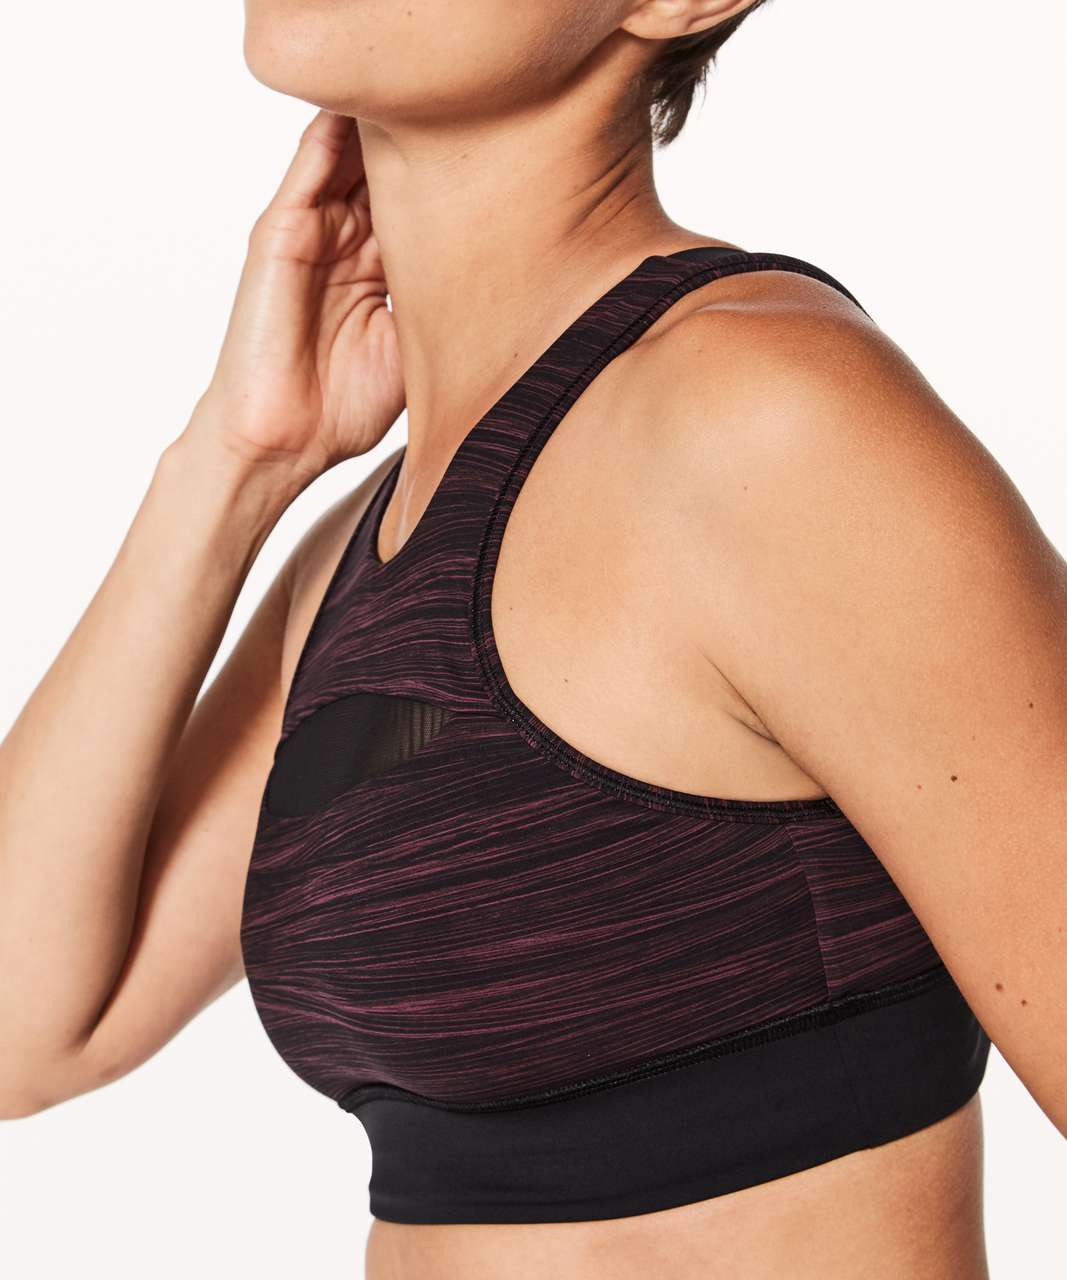 Lululemon Run The Day Bra - Low Tide Blush Berry Black / Black